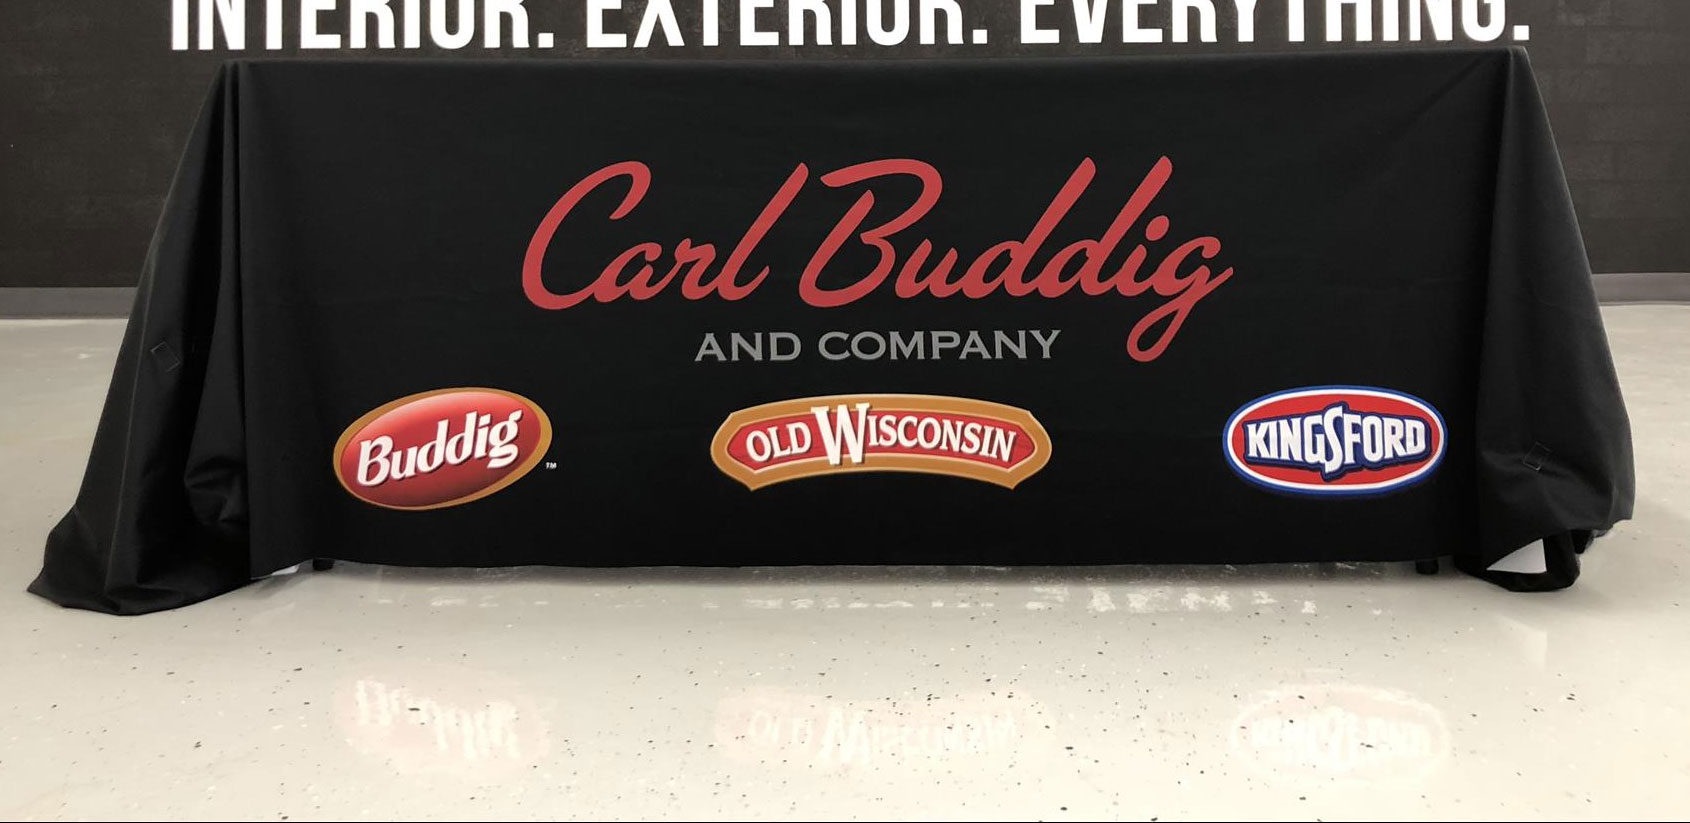 Carl Buddig and Company Banner